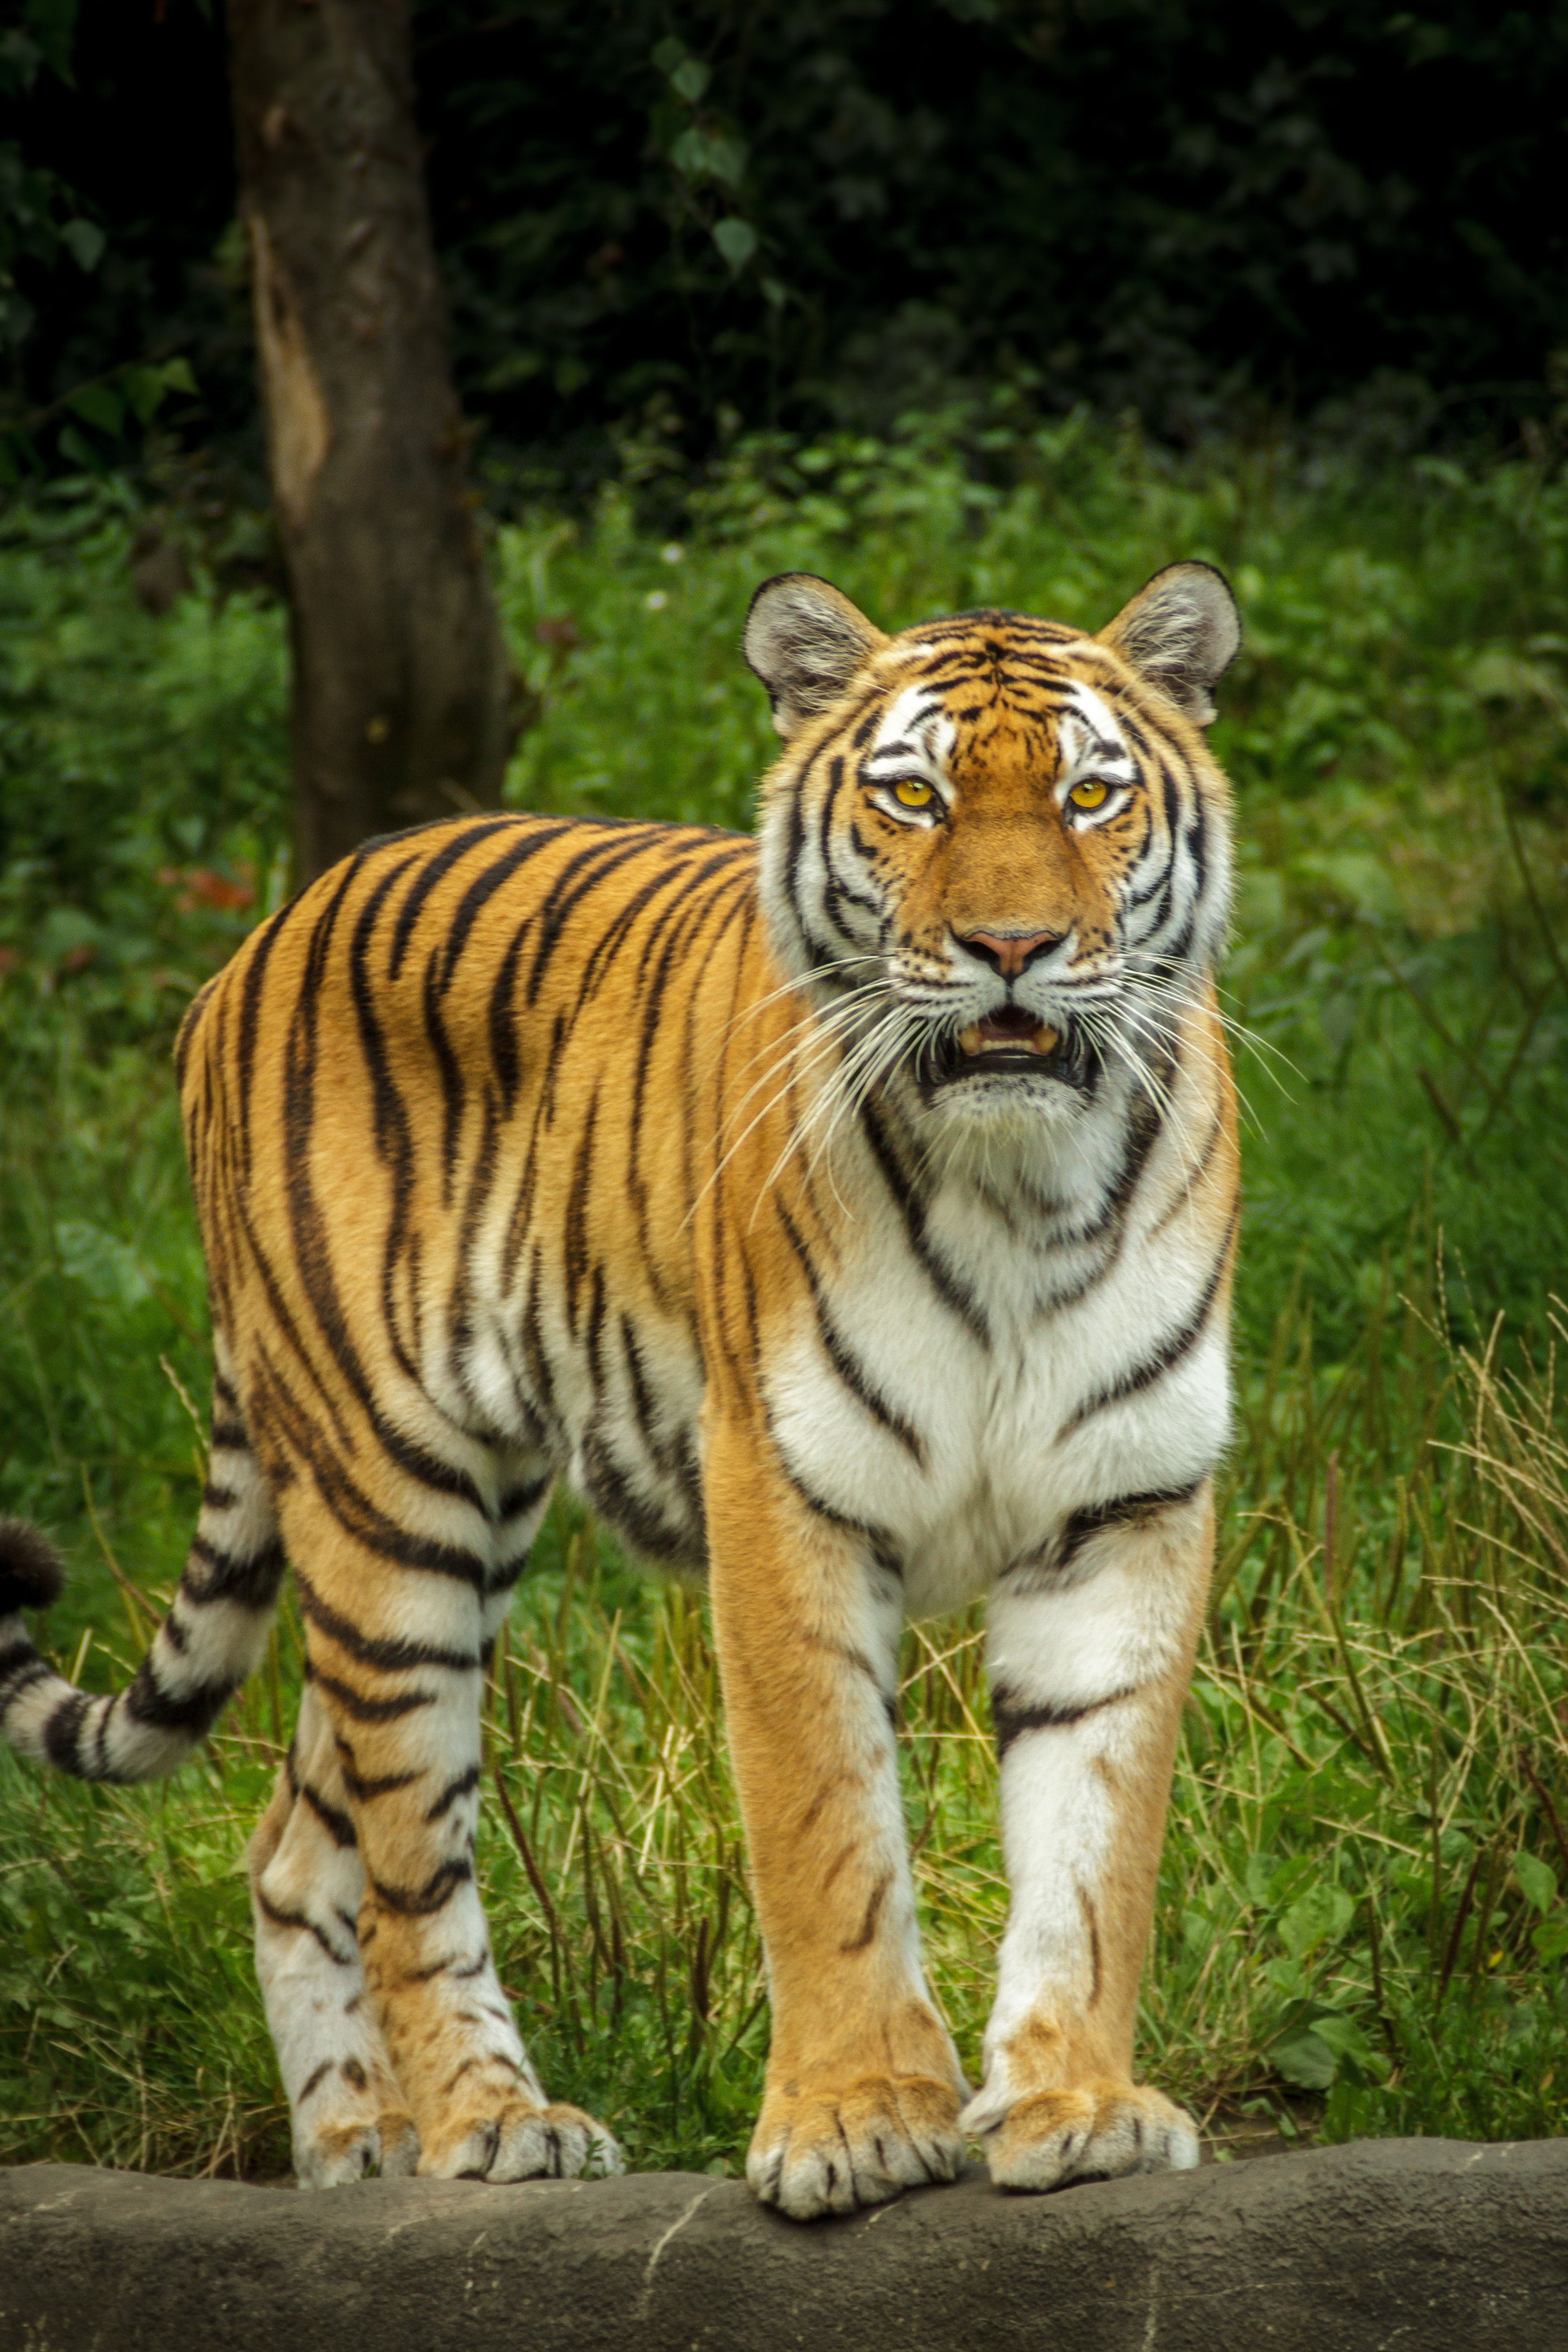 tiger in green grass near the tree during daytime · free stock photo